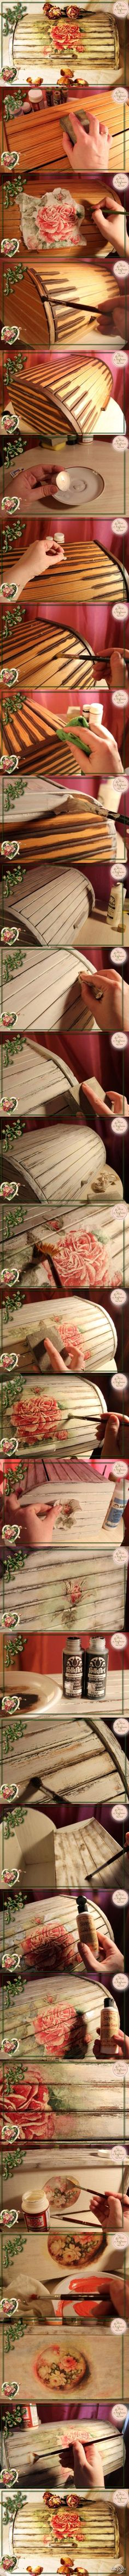 decoupage art craft handmade home decor DIY do it yourself tutorial Materials and techniques: rice paper napkin varnish mod podge craquelure paint etc. Napkin Decoupage, Decoupage Tutorial, Decoupage Box, Decoupage Vintage, Vintage Diy, Diy Tutorial, Wood Crafts, Diy And Crafts, 7 Arts